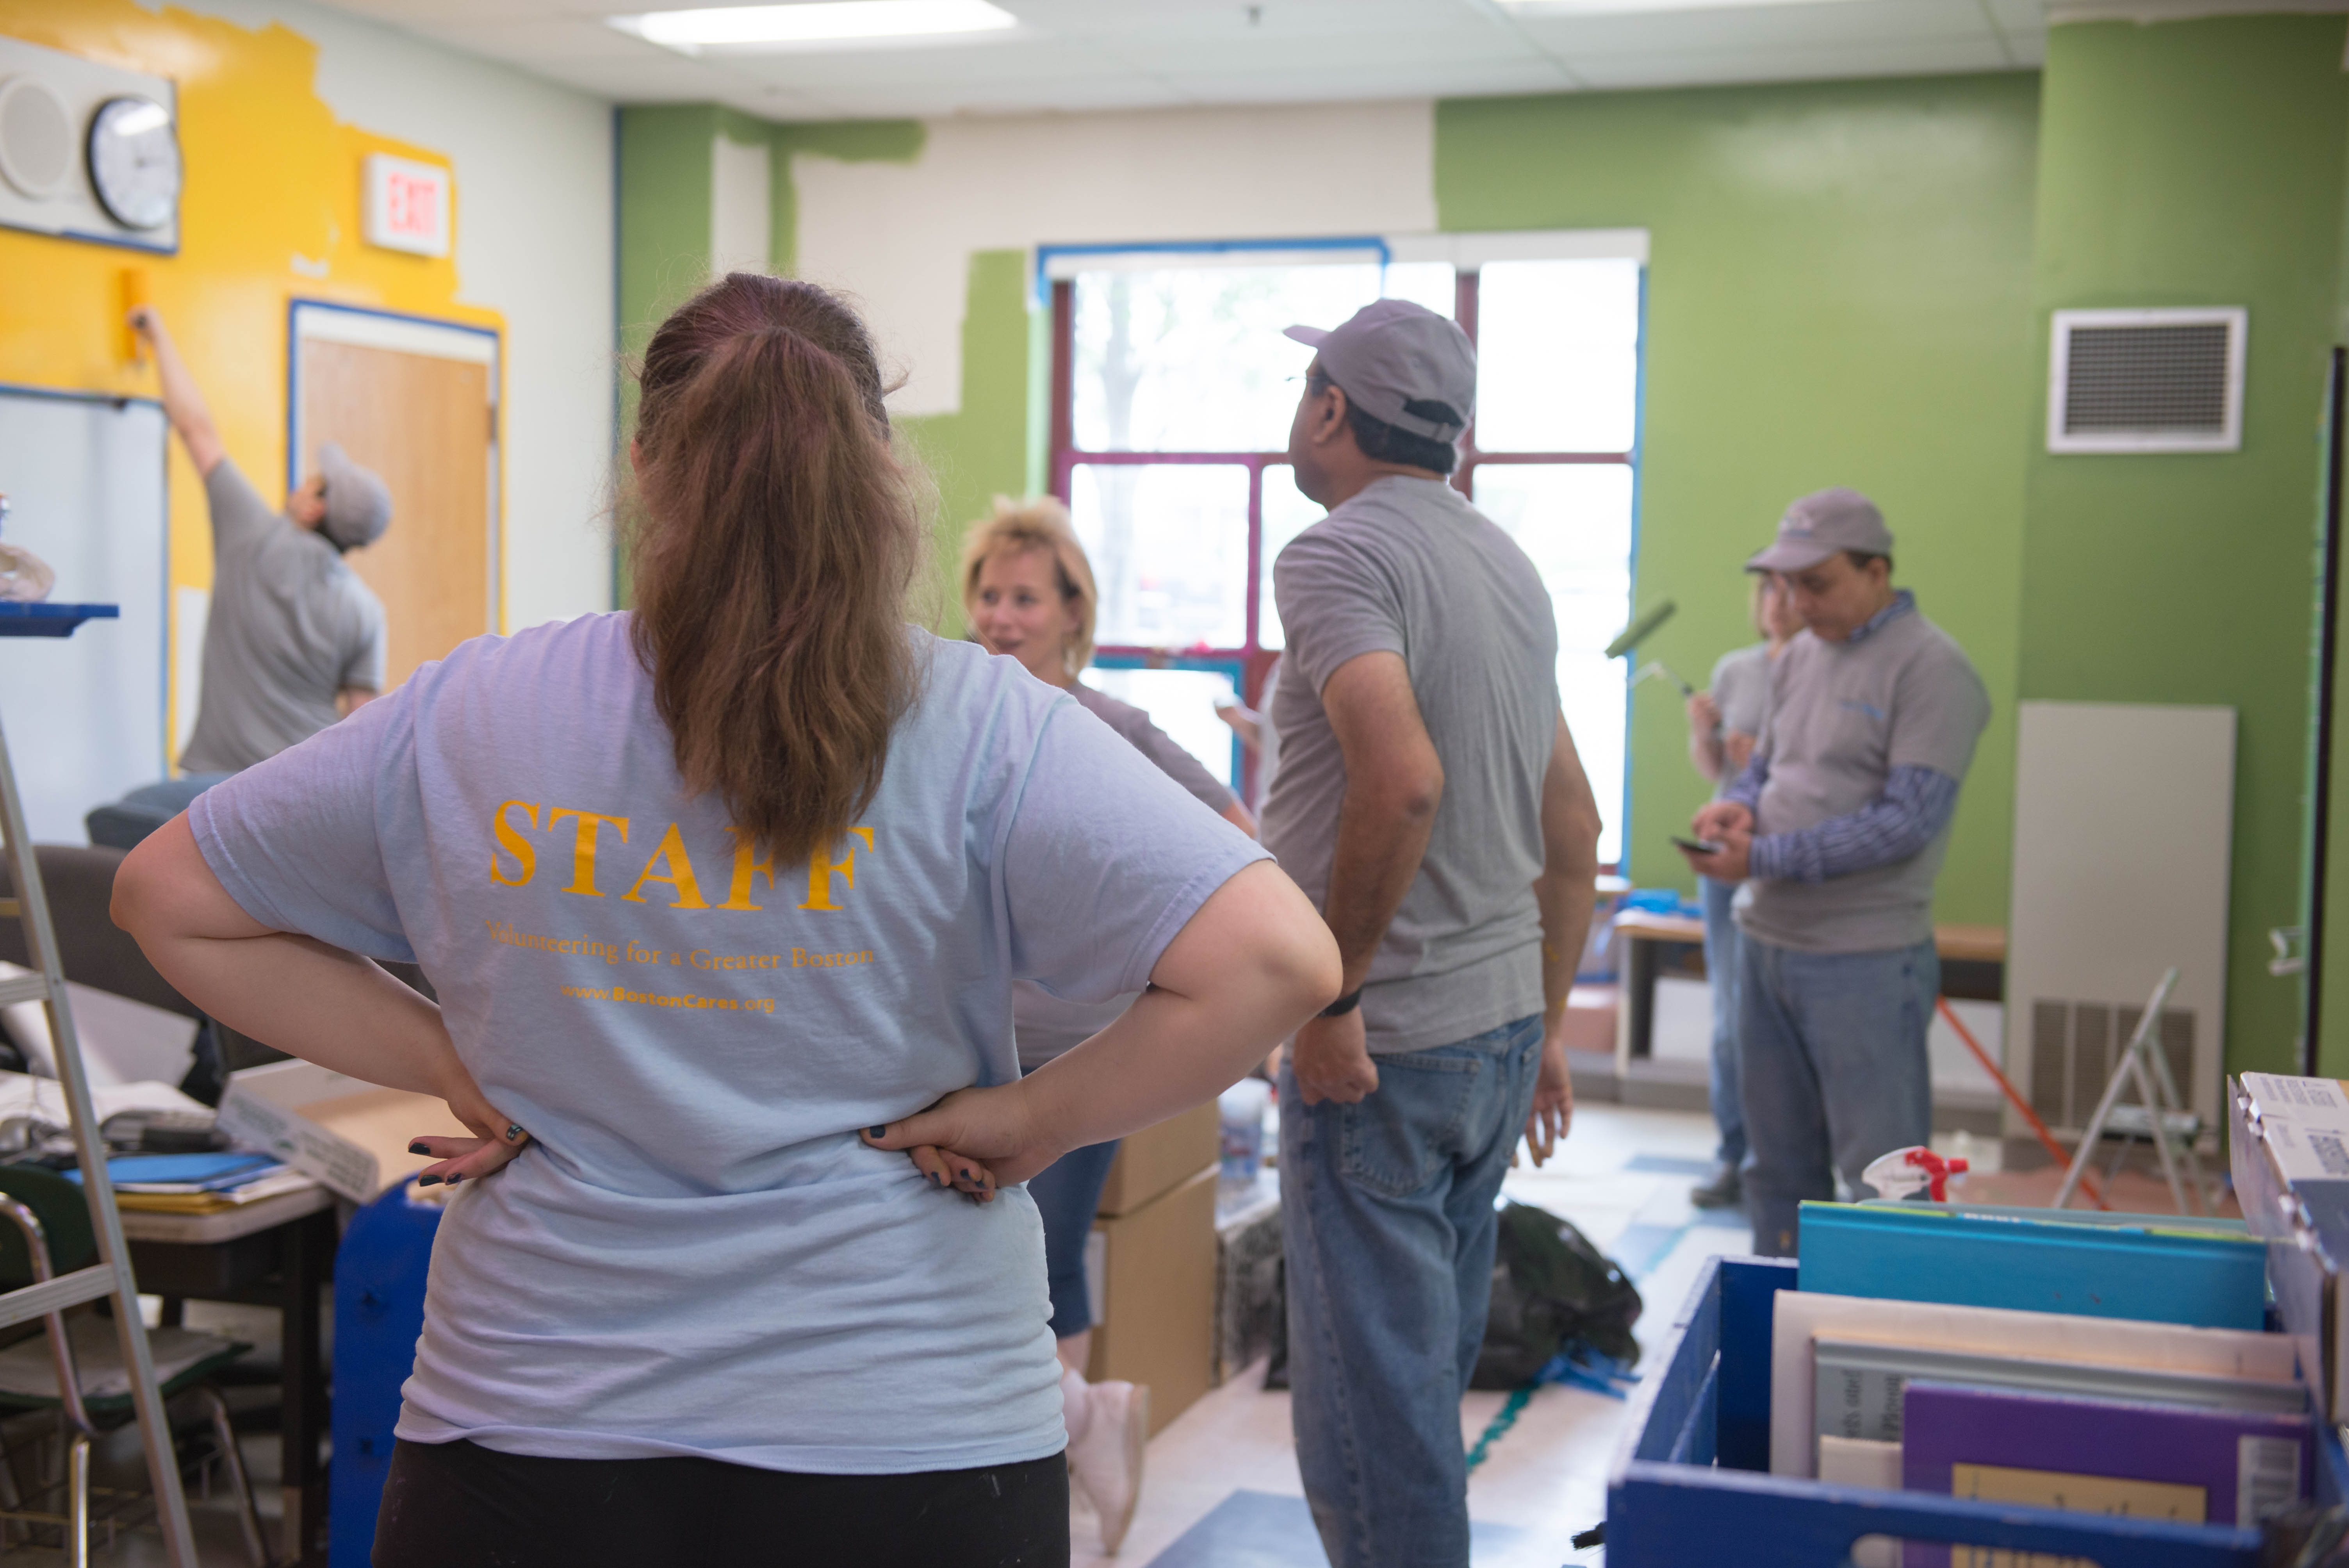 Volunteers painting a classroom yellow and green